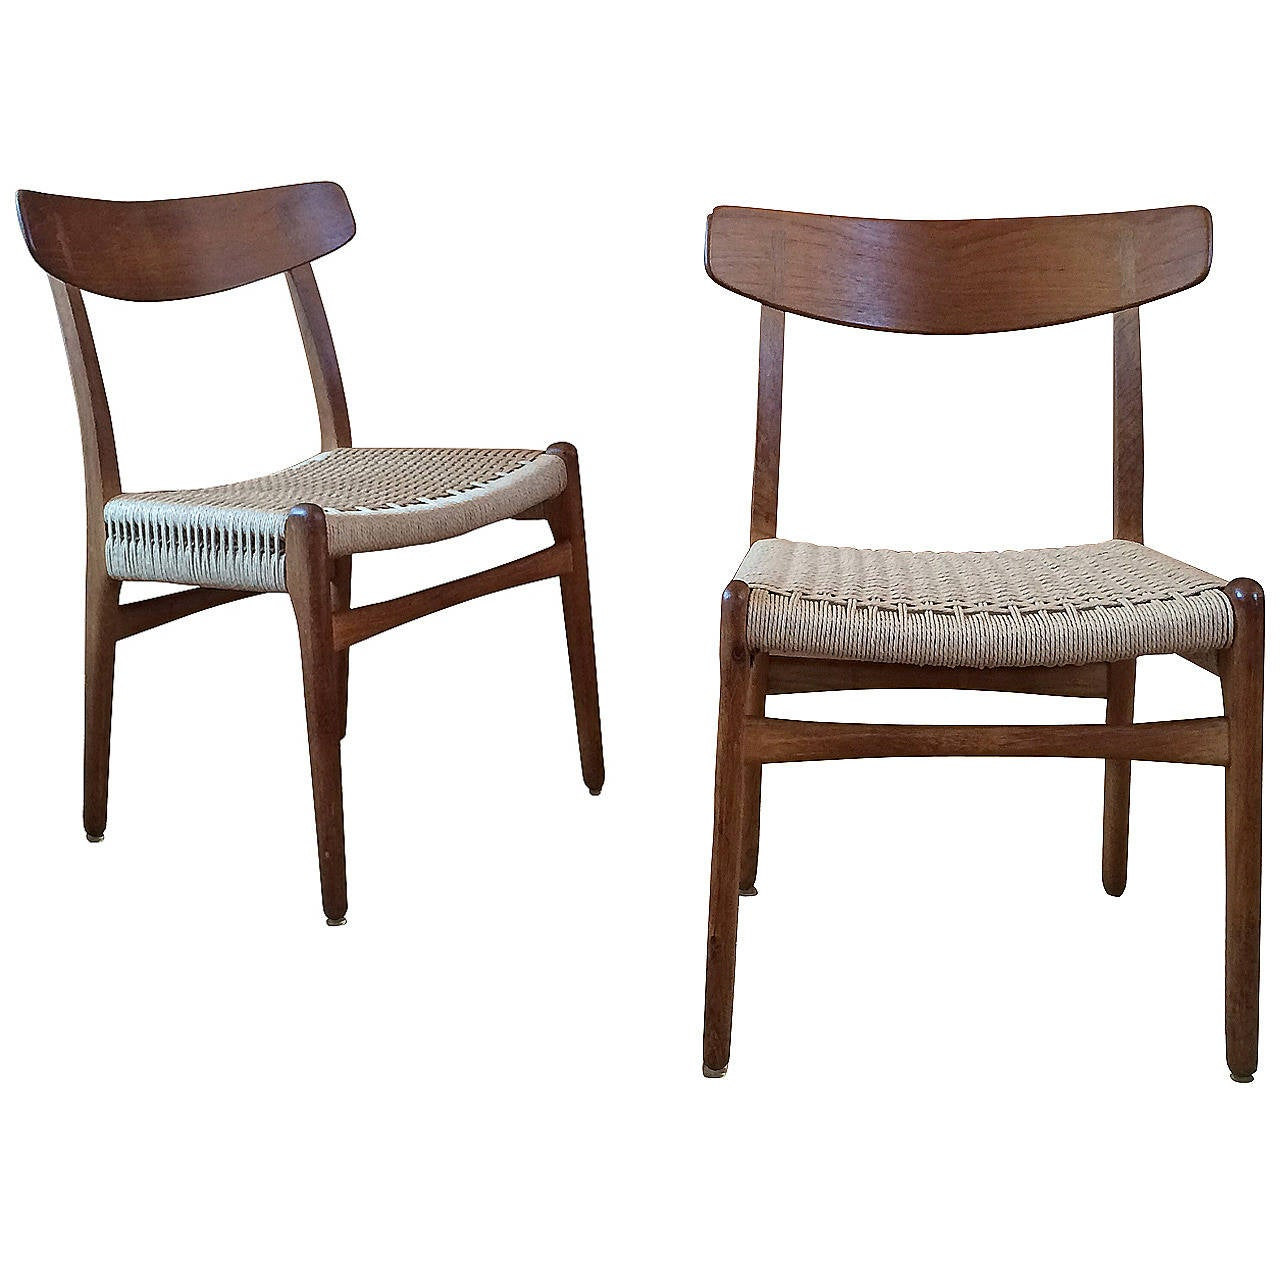 Museum Quality Hans Wegner Chairs in Oak and Paper Cord, 1950 1